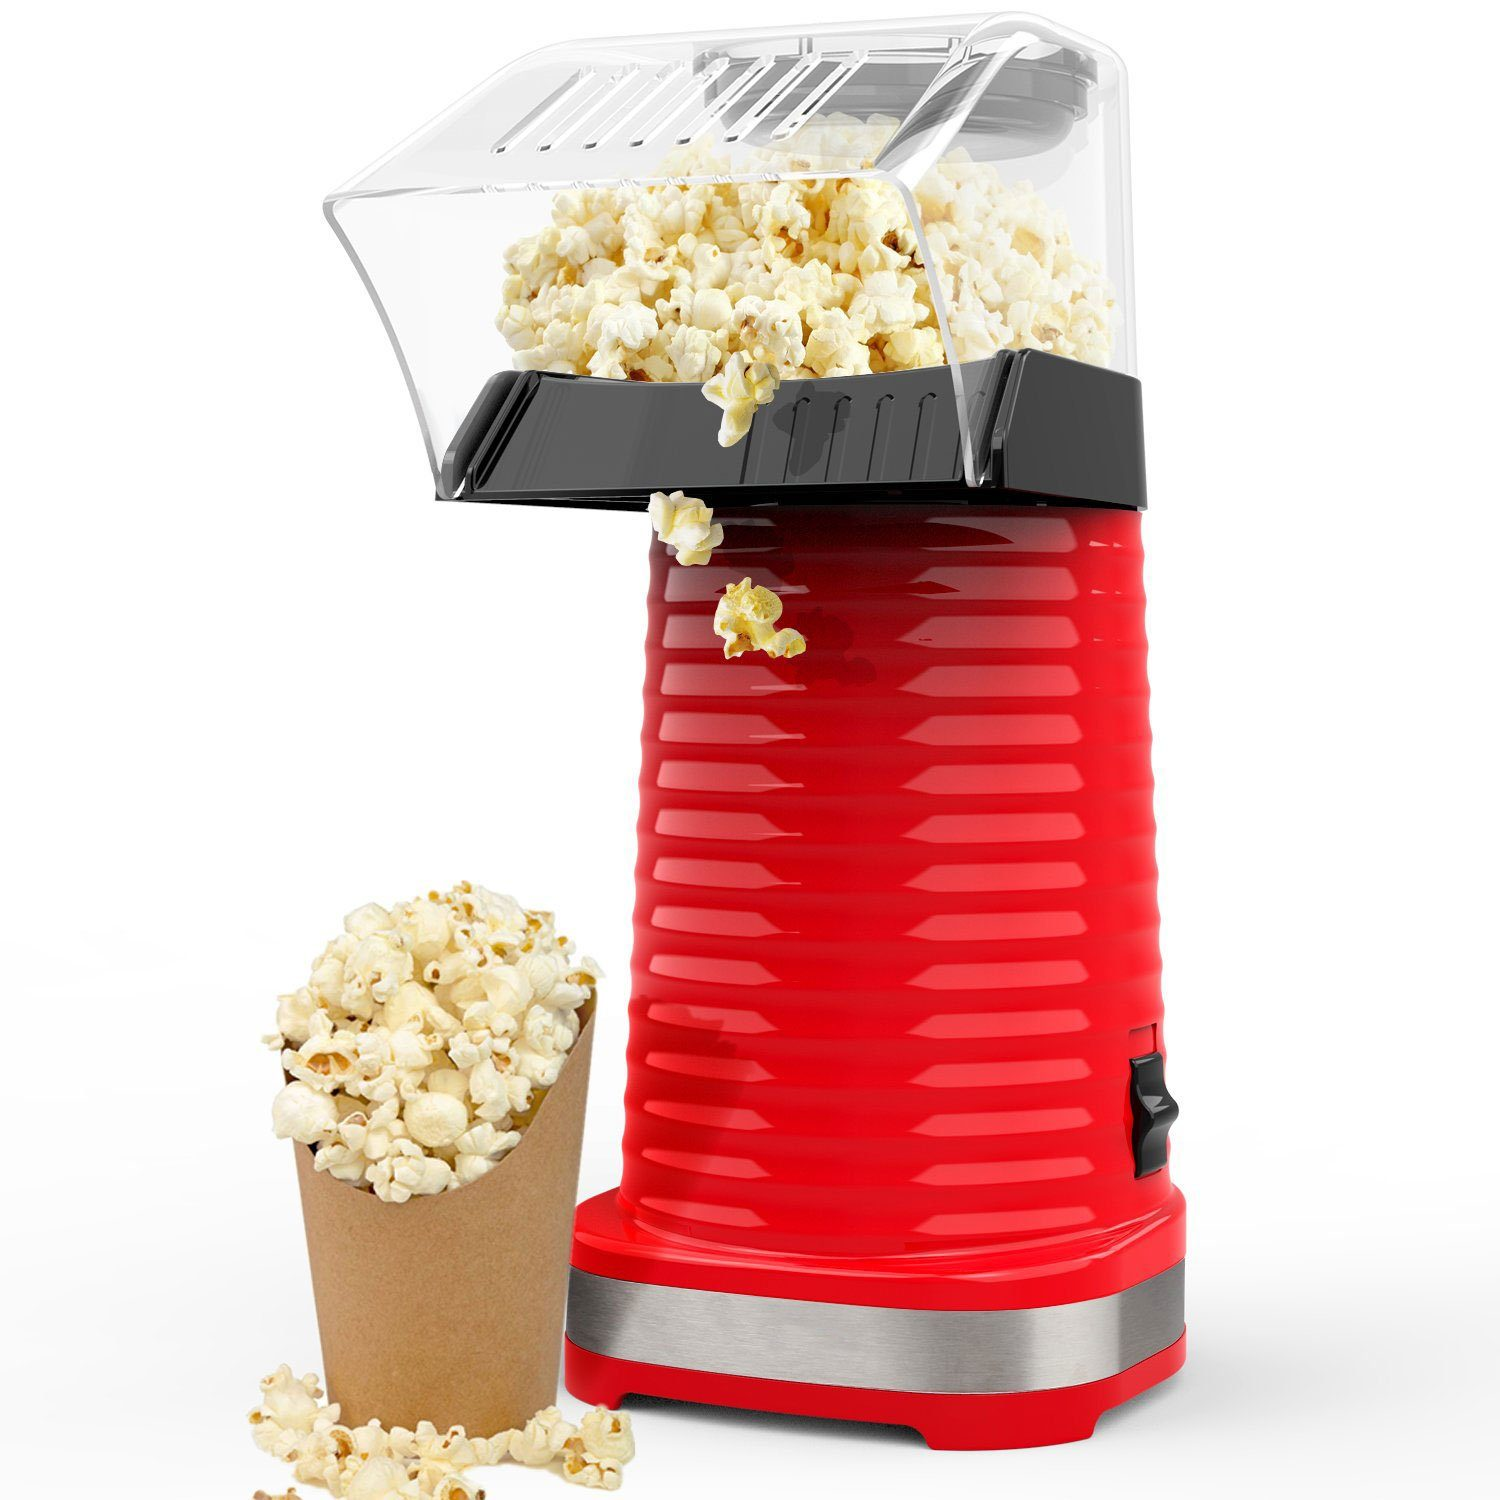 Electric Hot Air Popcorn Maker